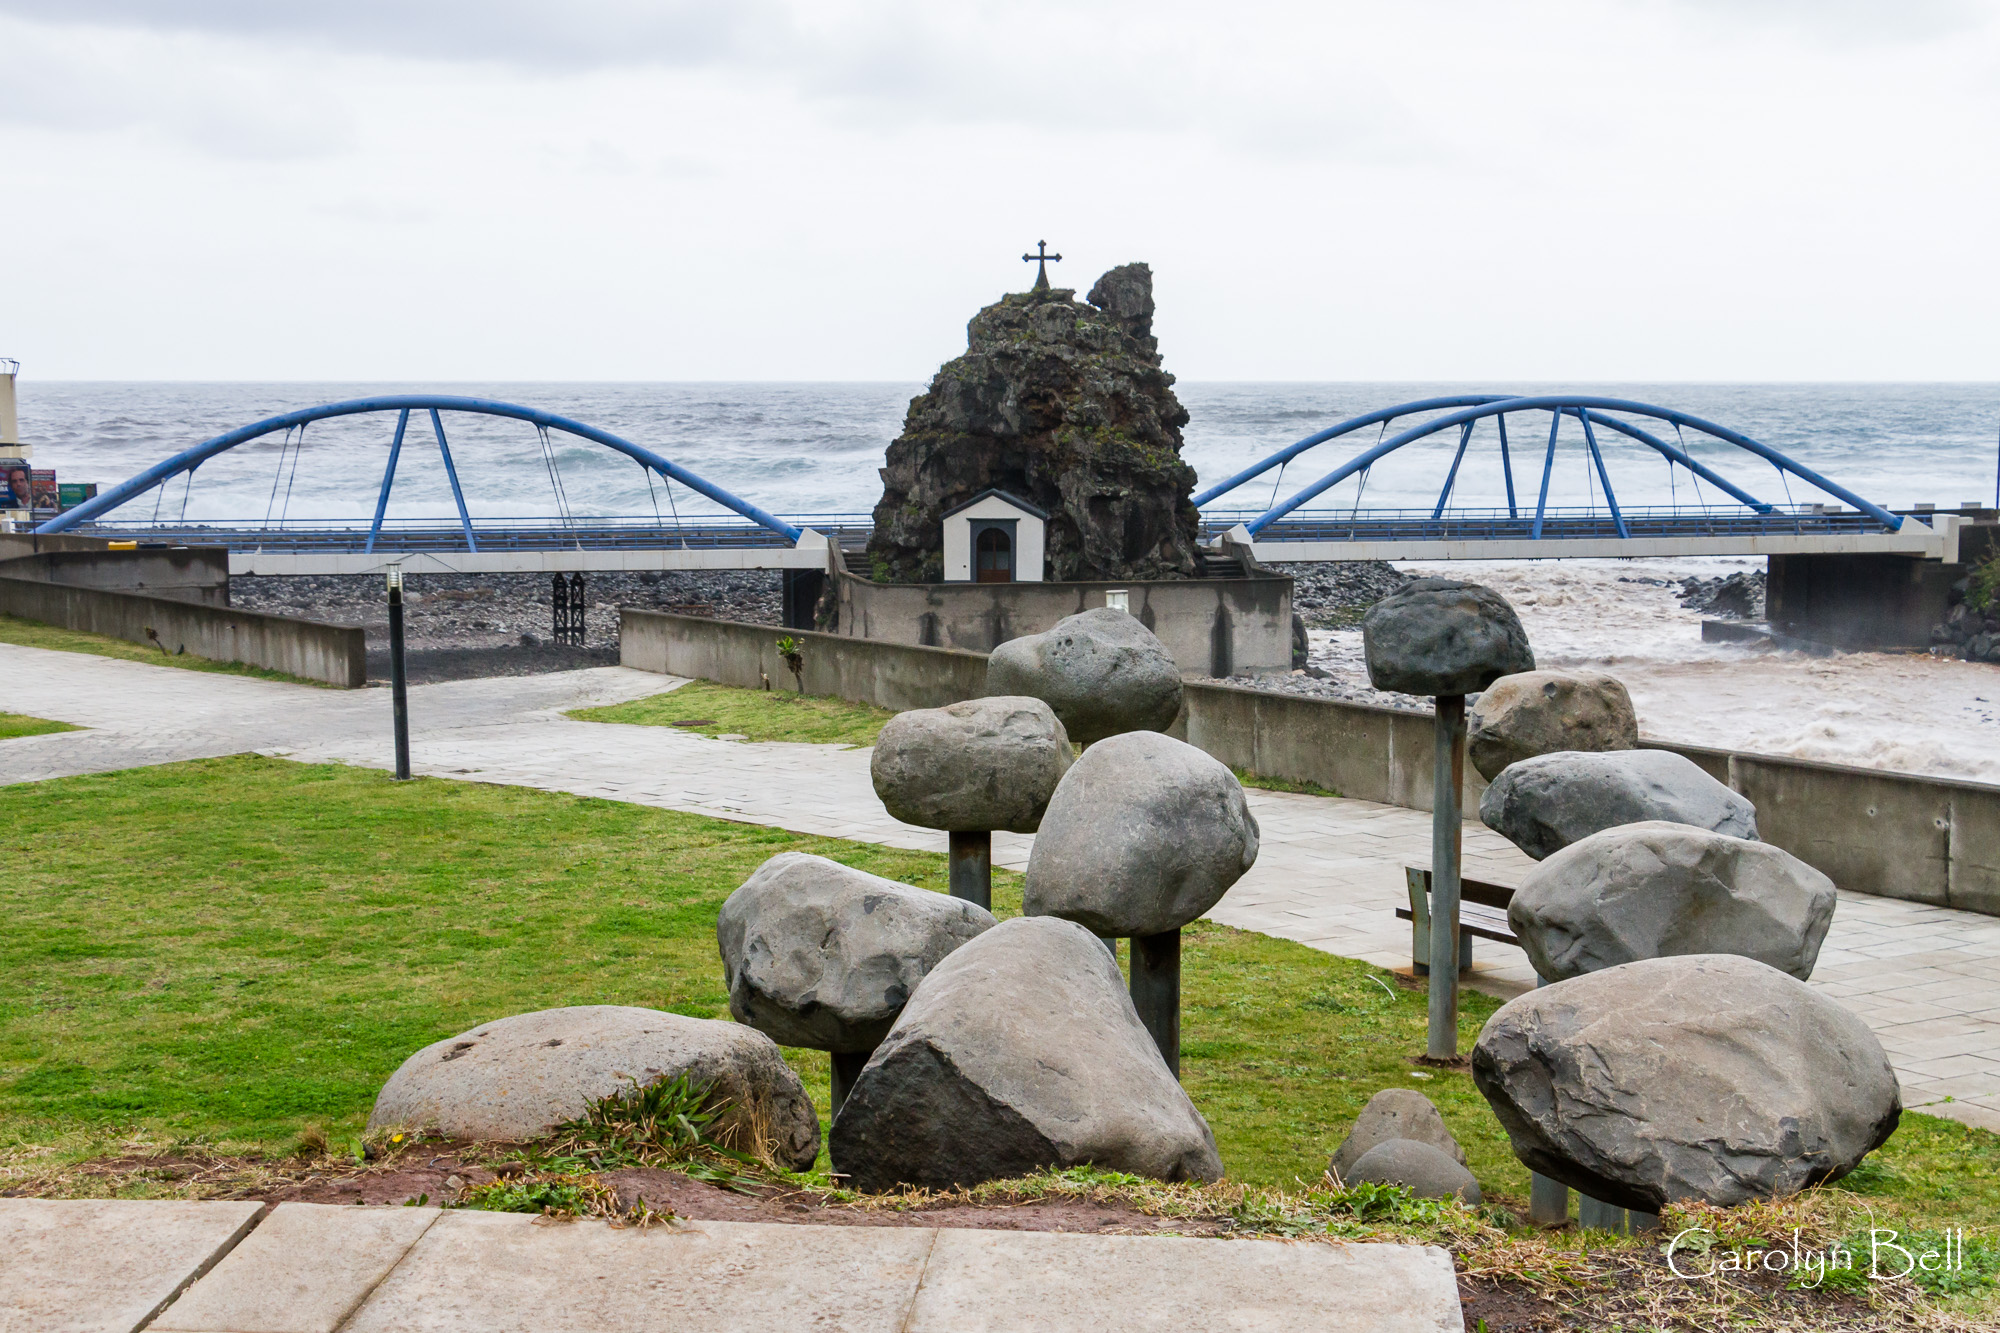 Bridges and sculptures at Sao Vicente